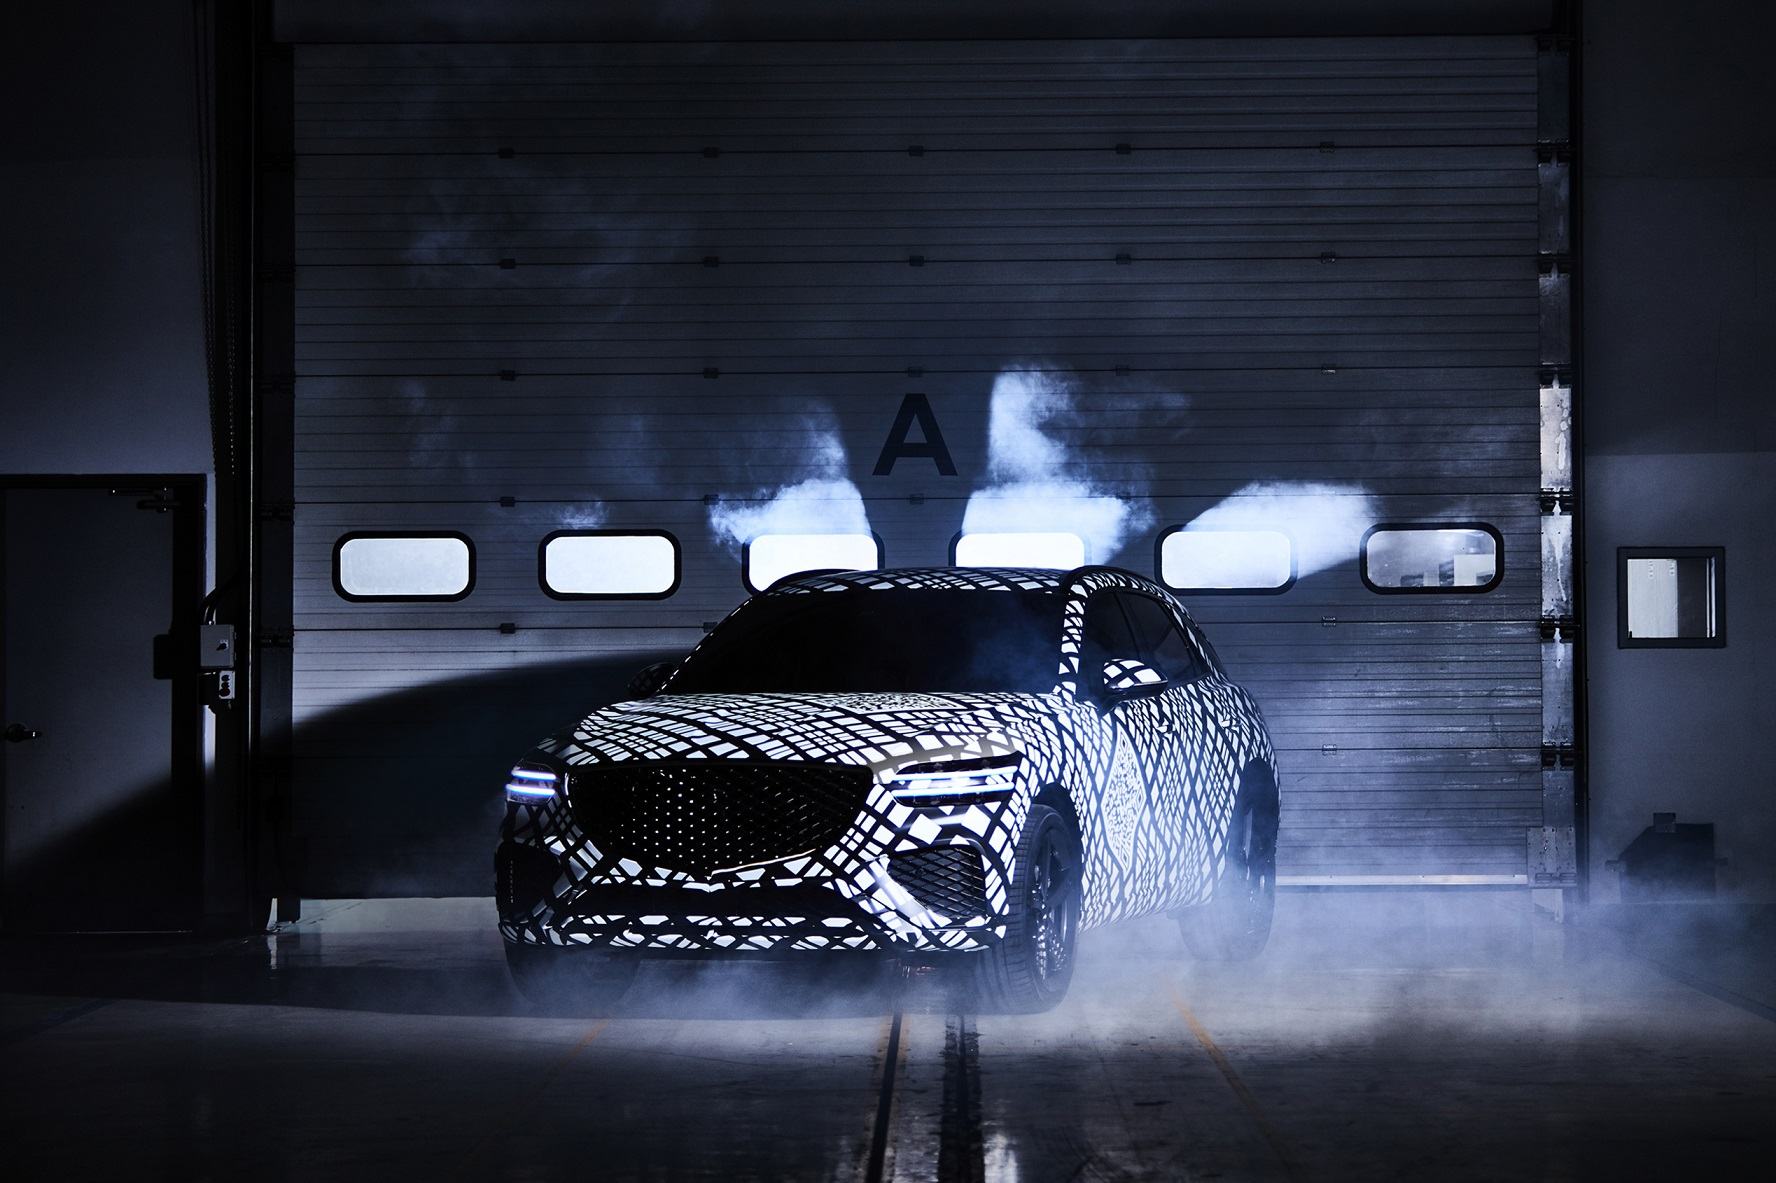 Genesis GV70 teased: The luxurious SUV